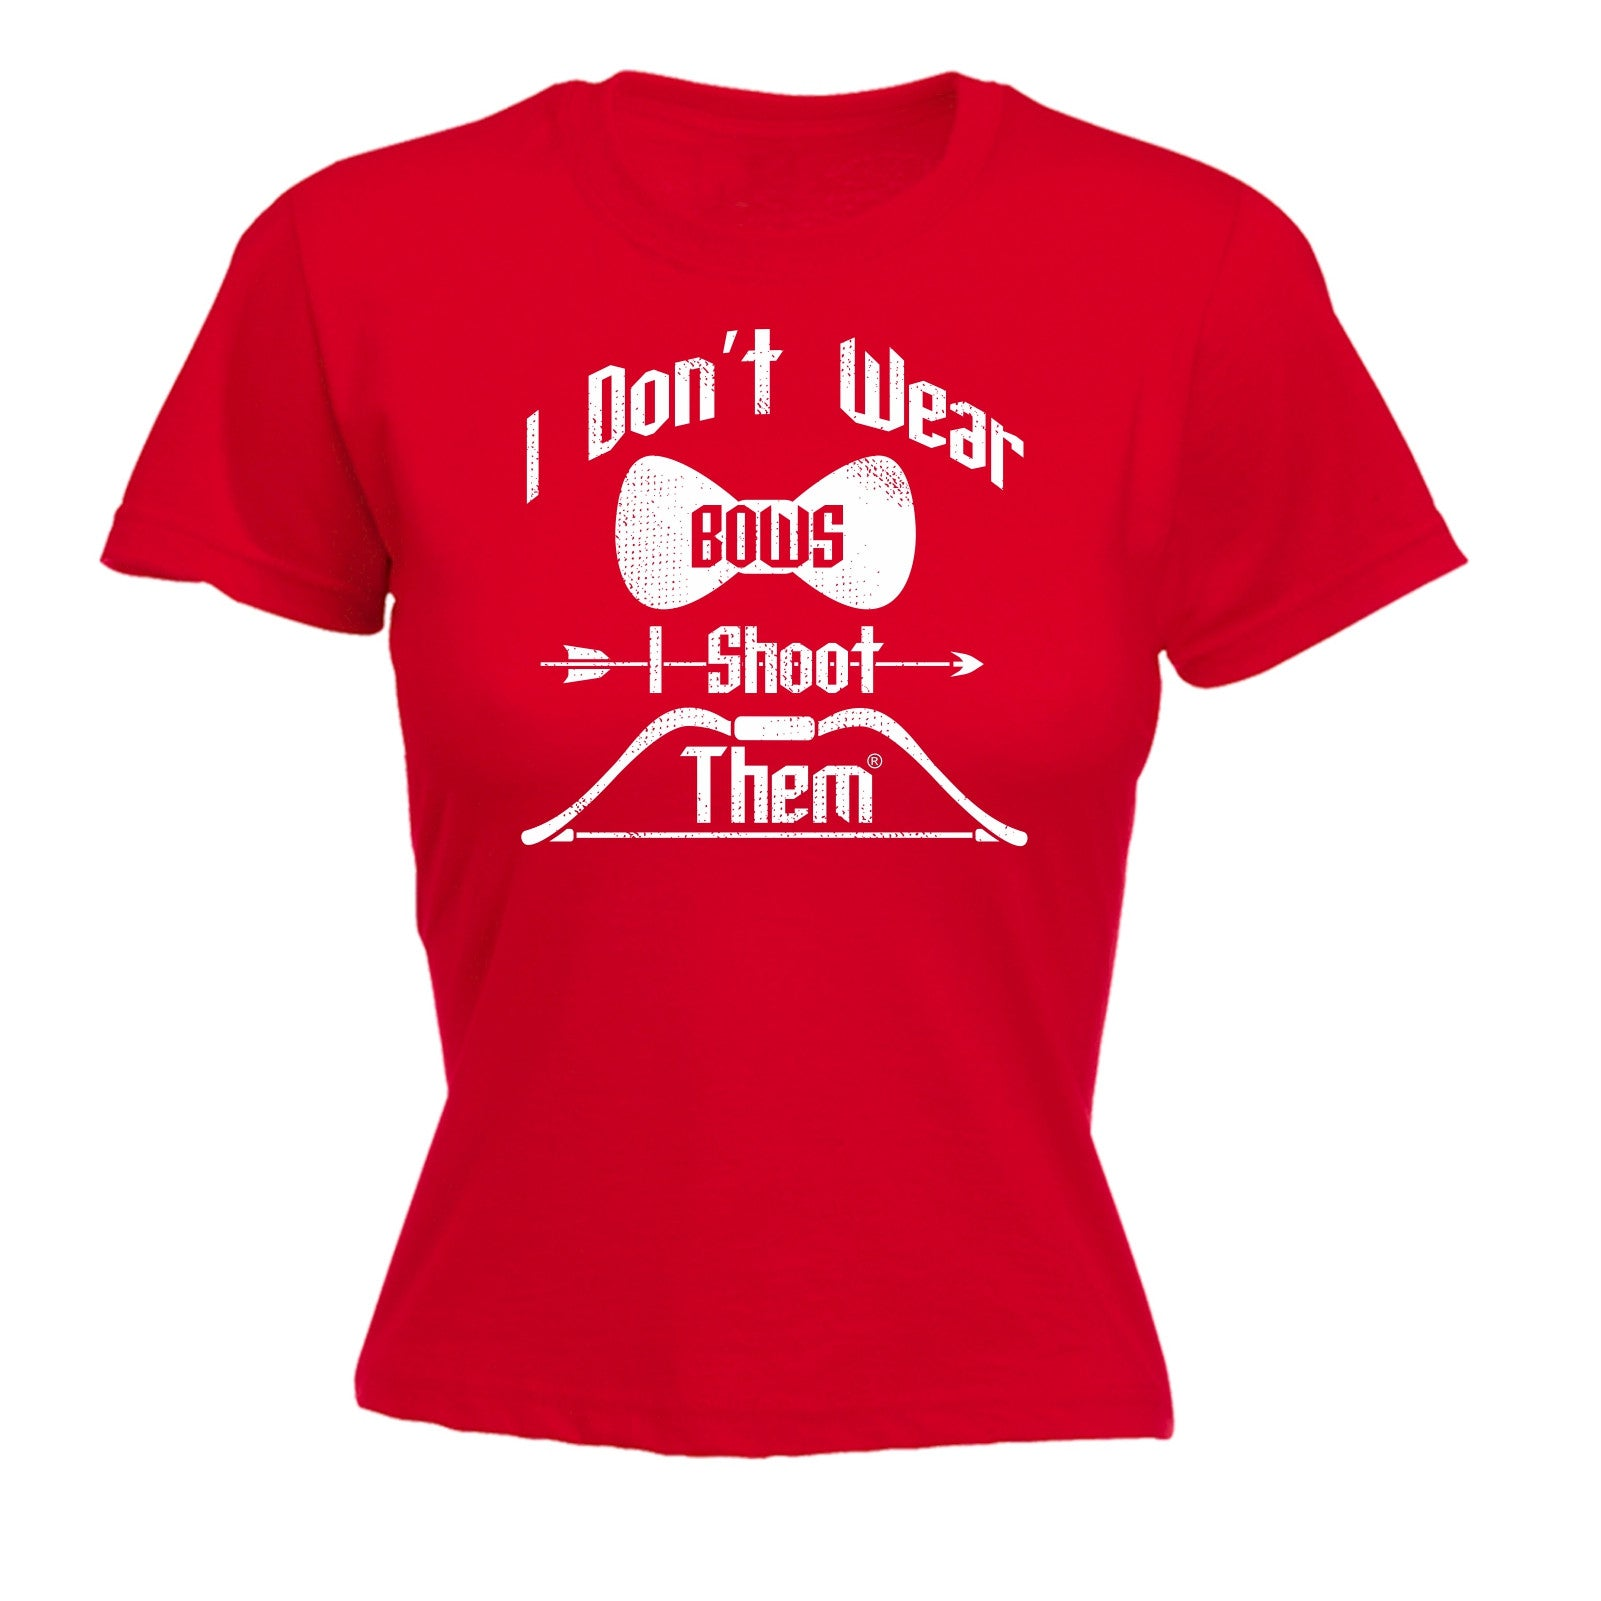 Find great deals on eBay for bow hunting t shirt. Shop with confidence.